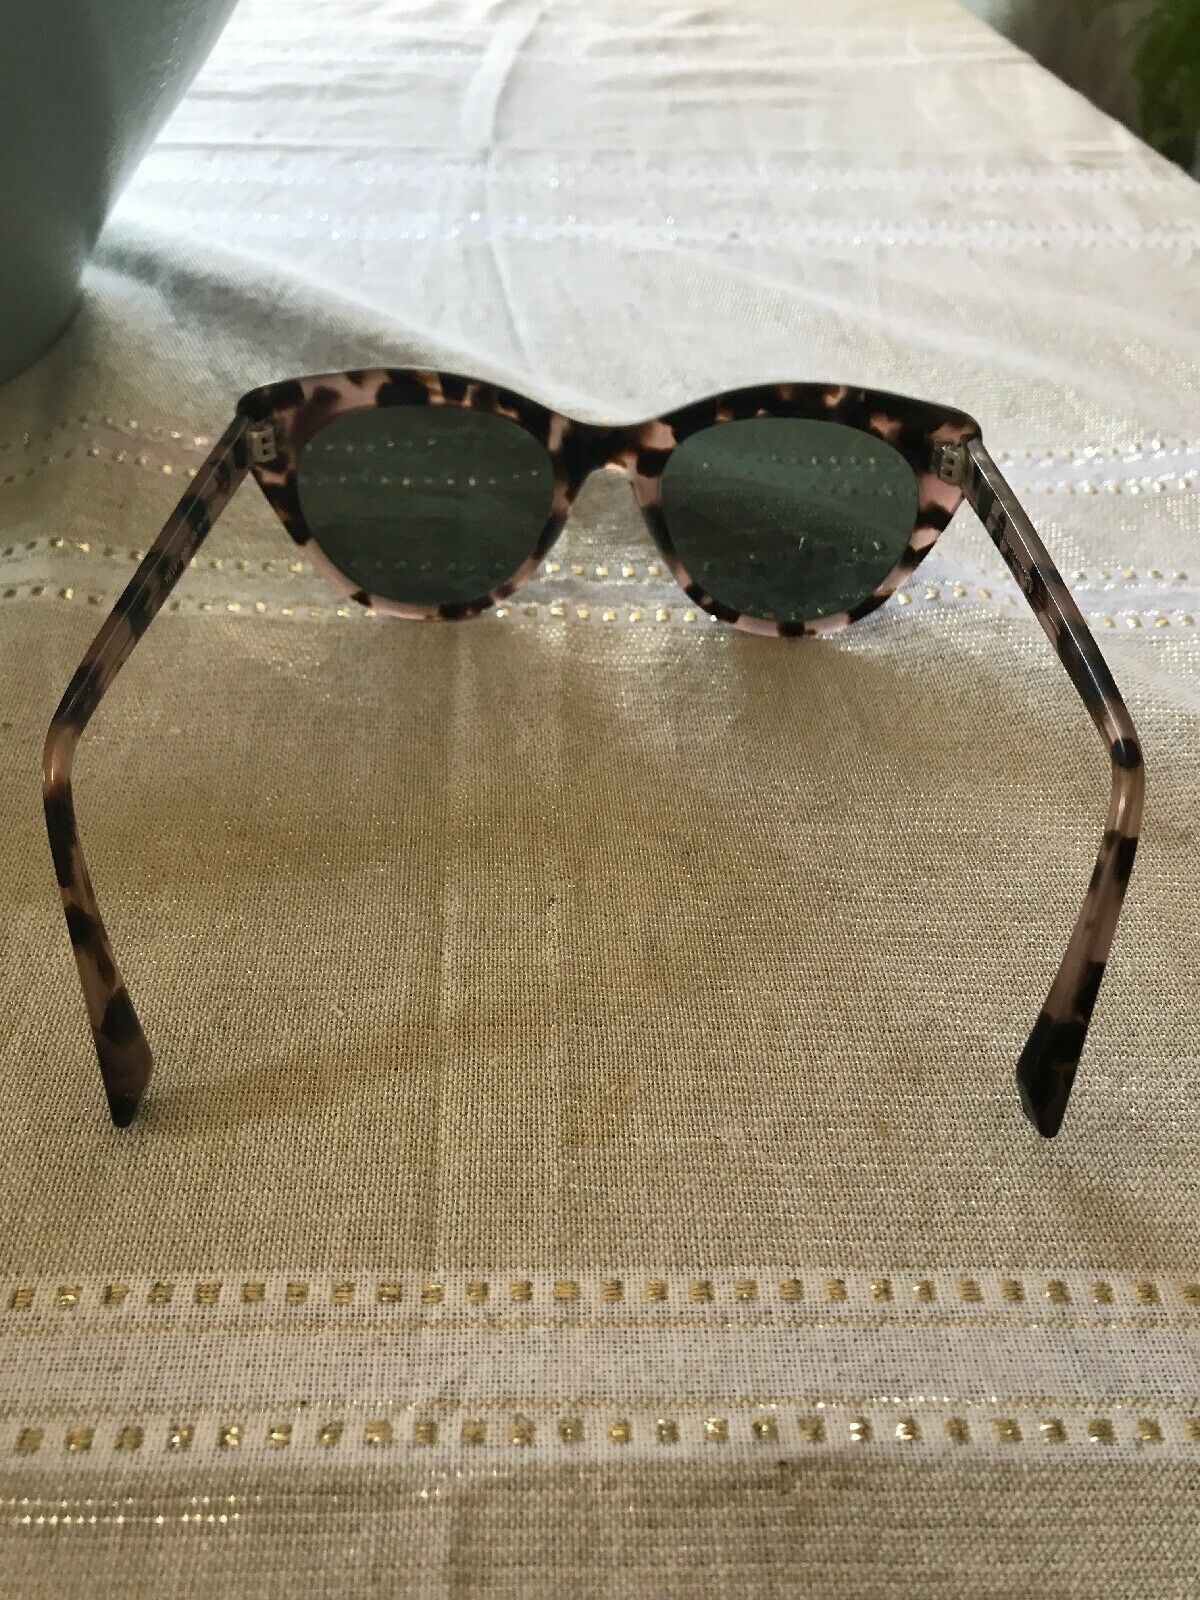 warby parker sunglasses - image 2